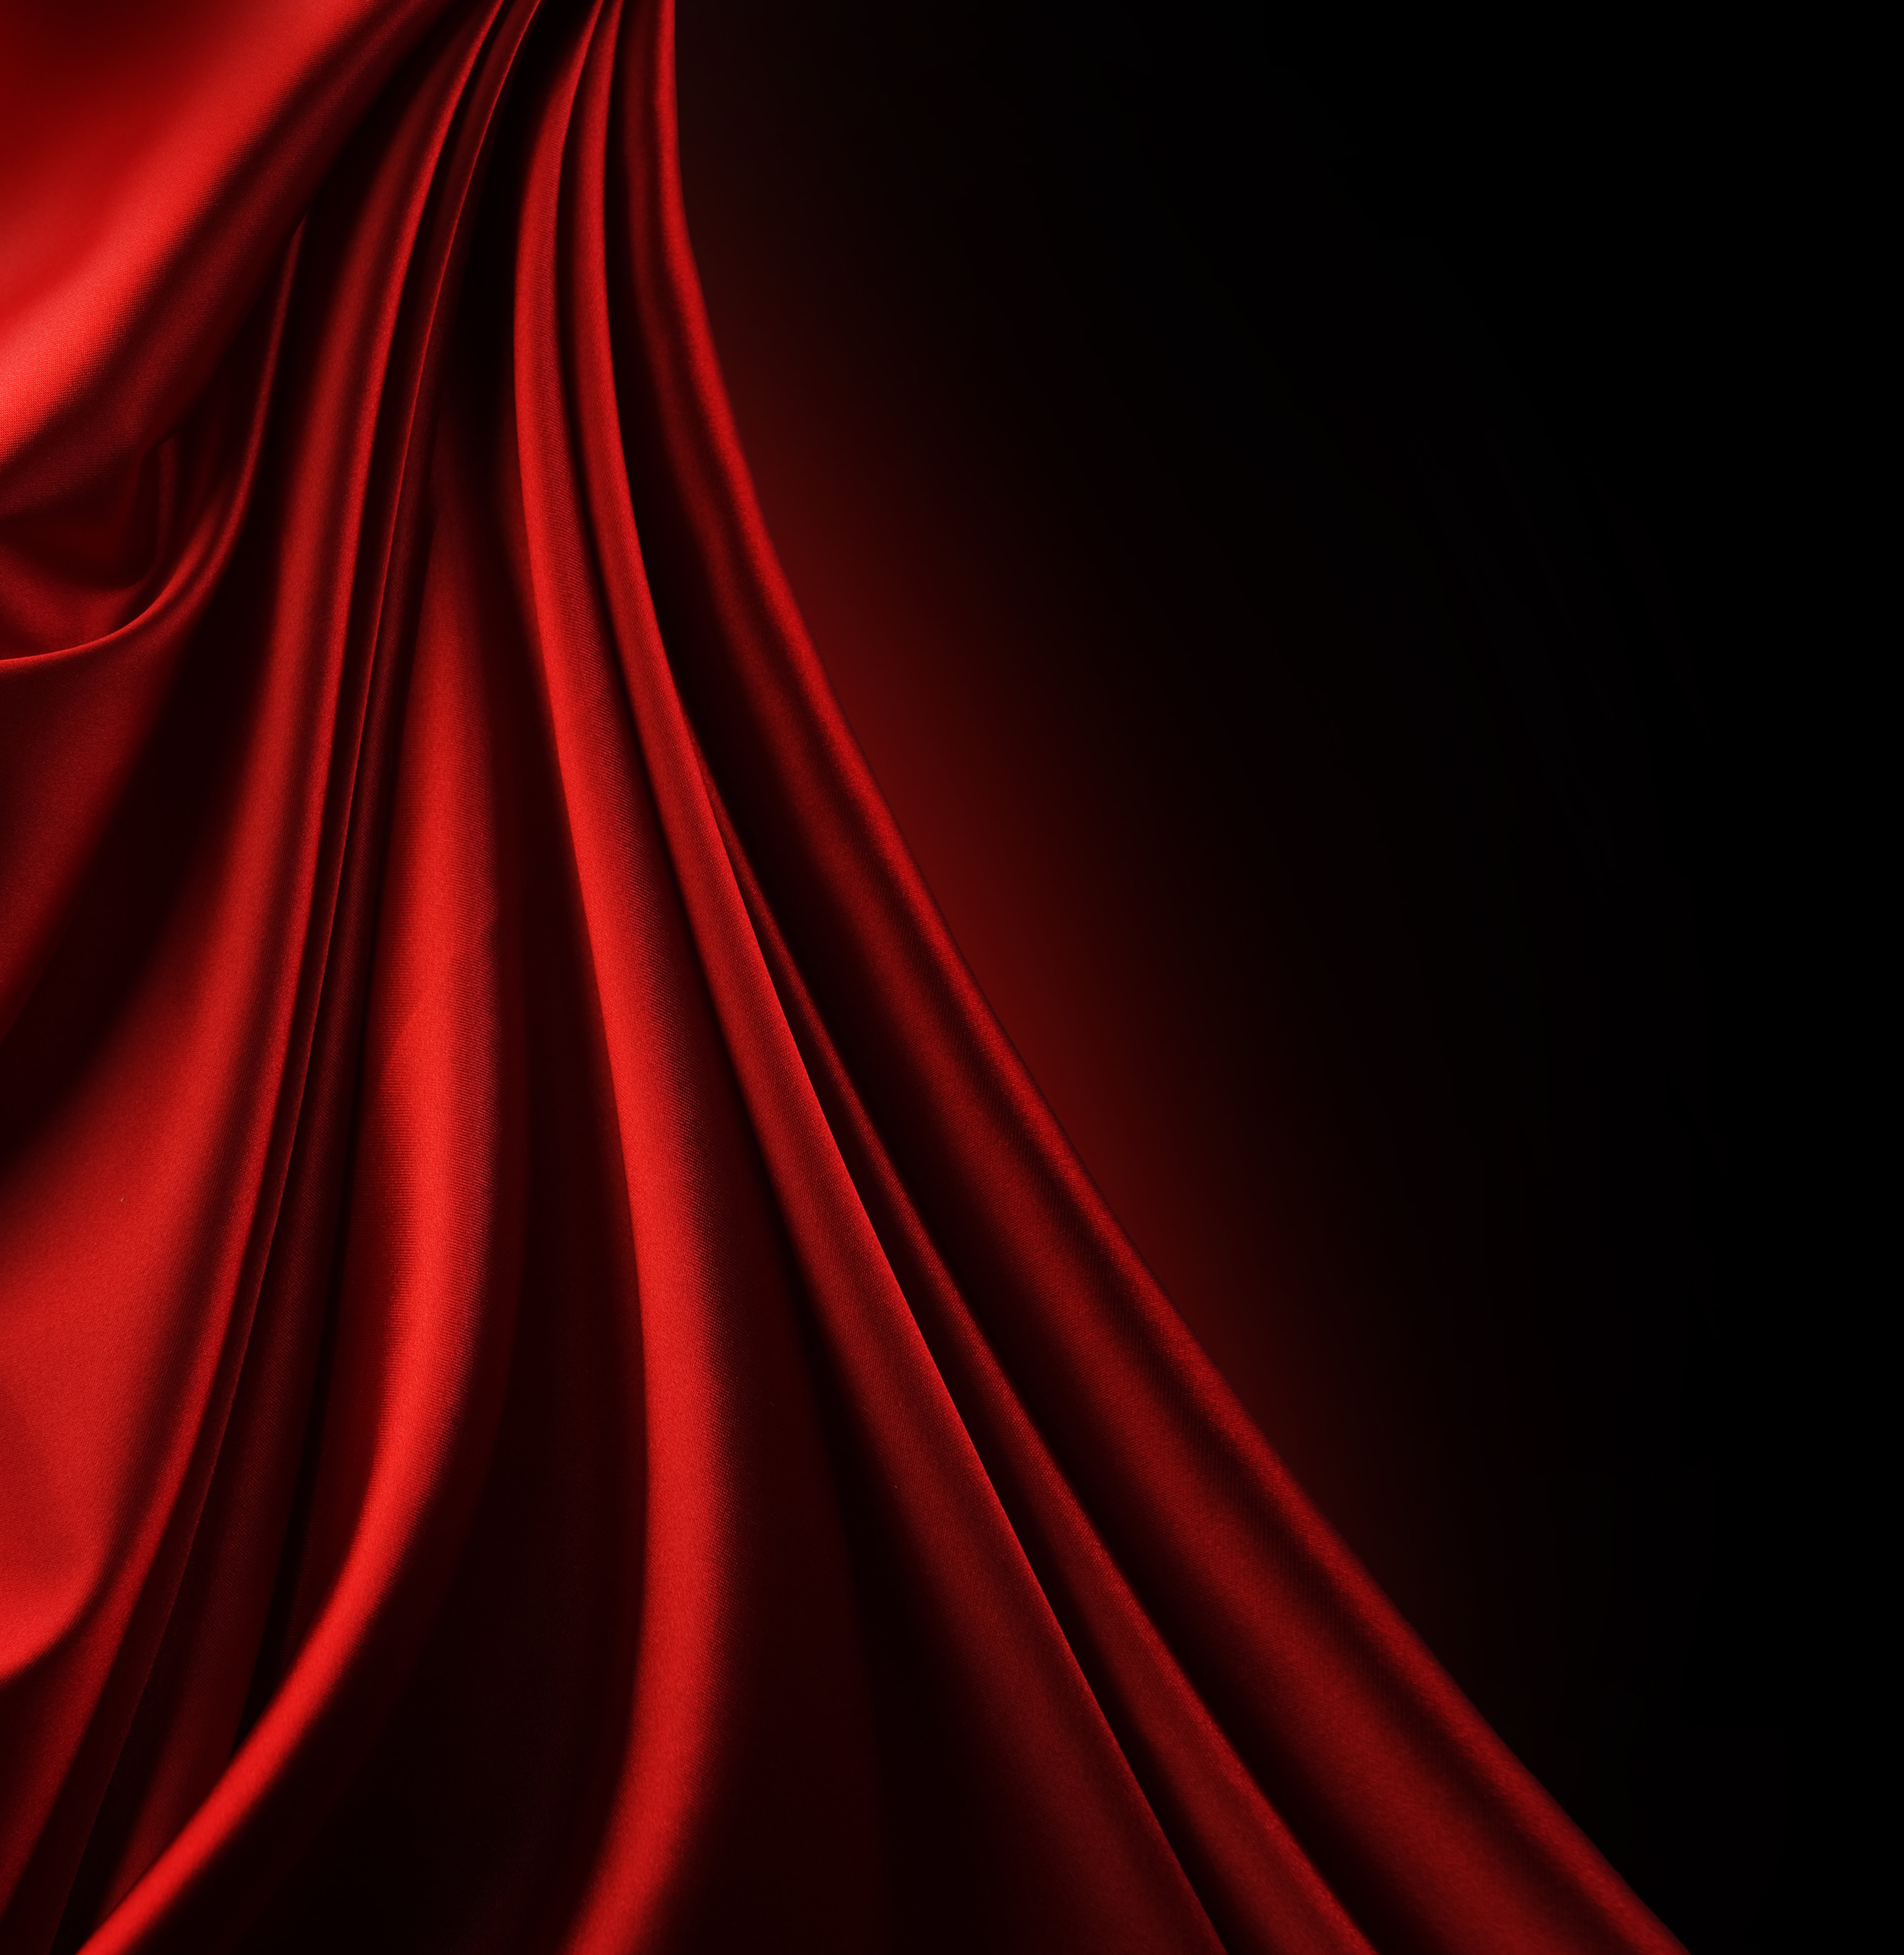 red fabric cloth background silk download photo background texture 4635x4760